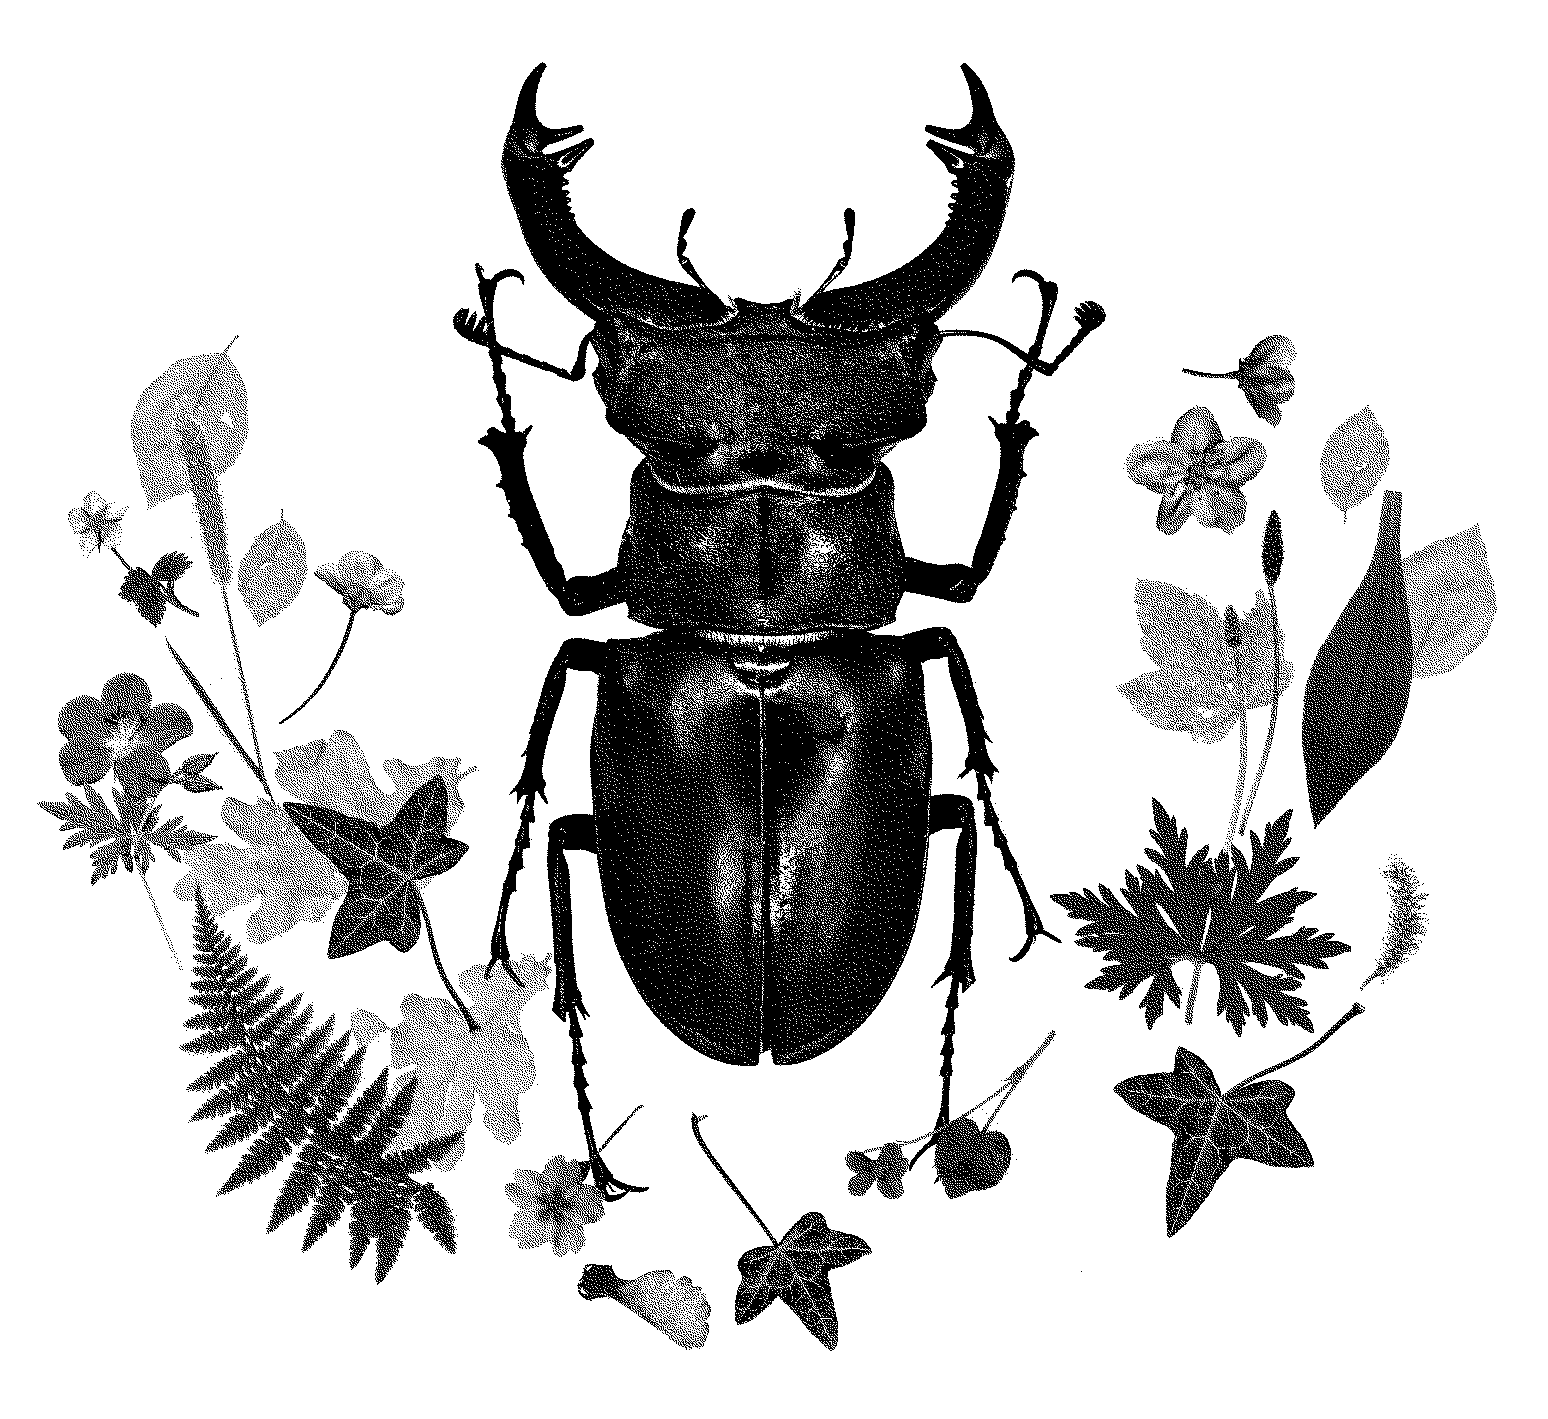 Artwork with a stag beetle and leaves, in black and white.